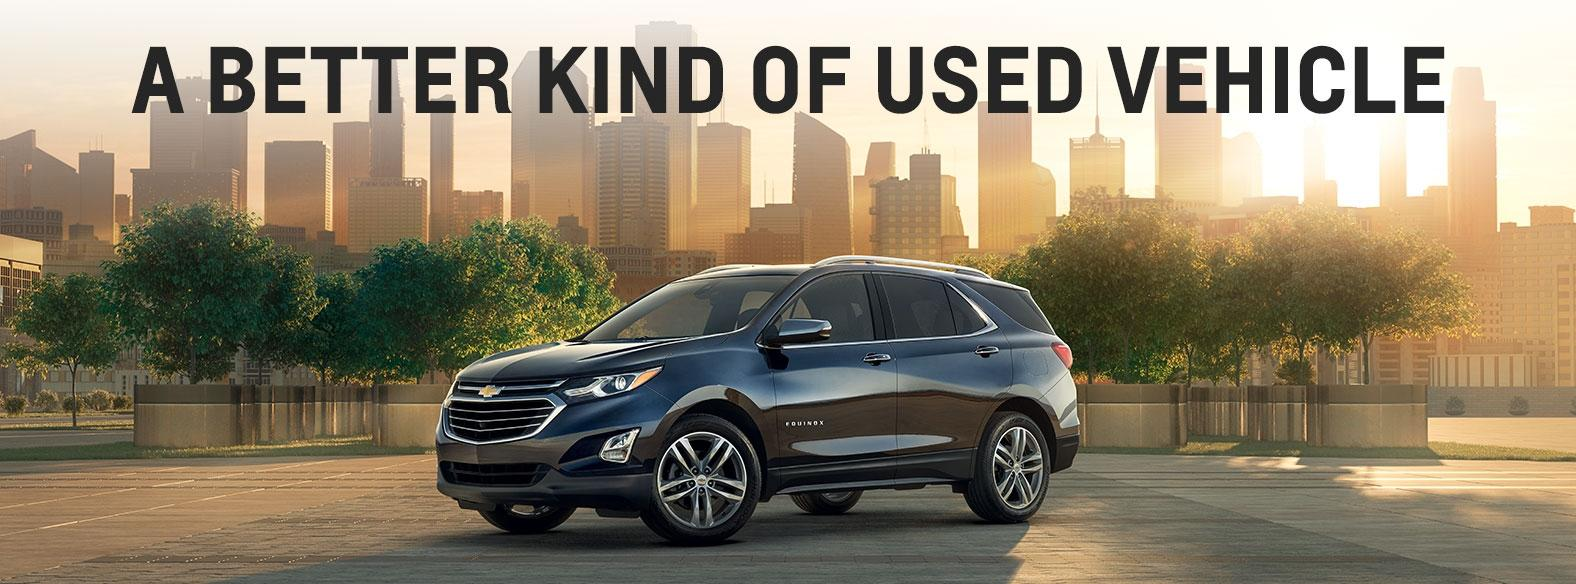 Chevrolet Certified Pre-Owned Advantage